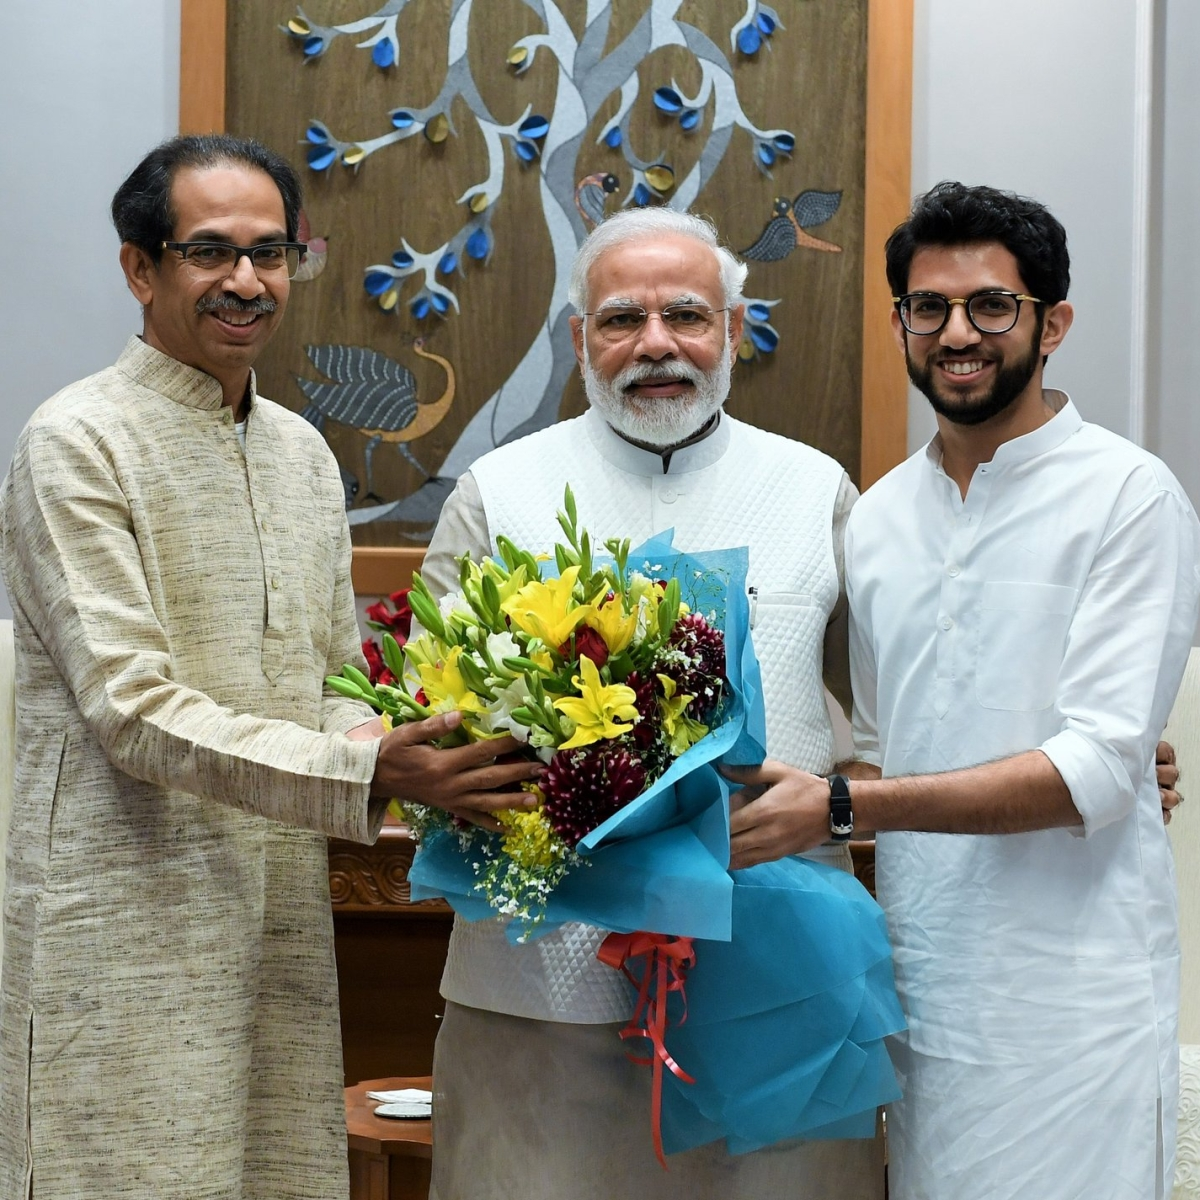 Uddhav Thackeray nomination into legislative council: Why did PM Narendra Modi intervene?